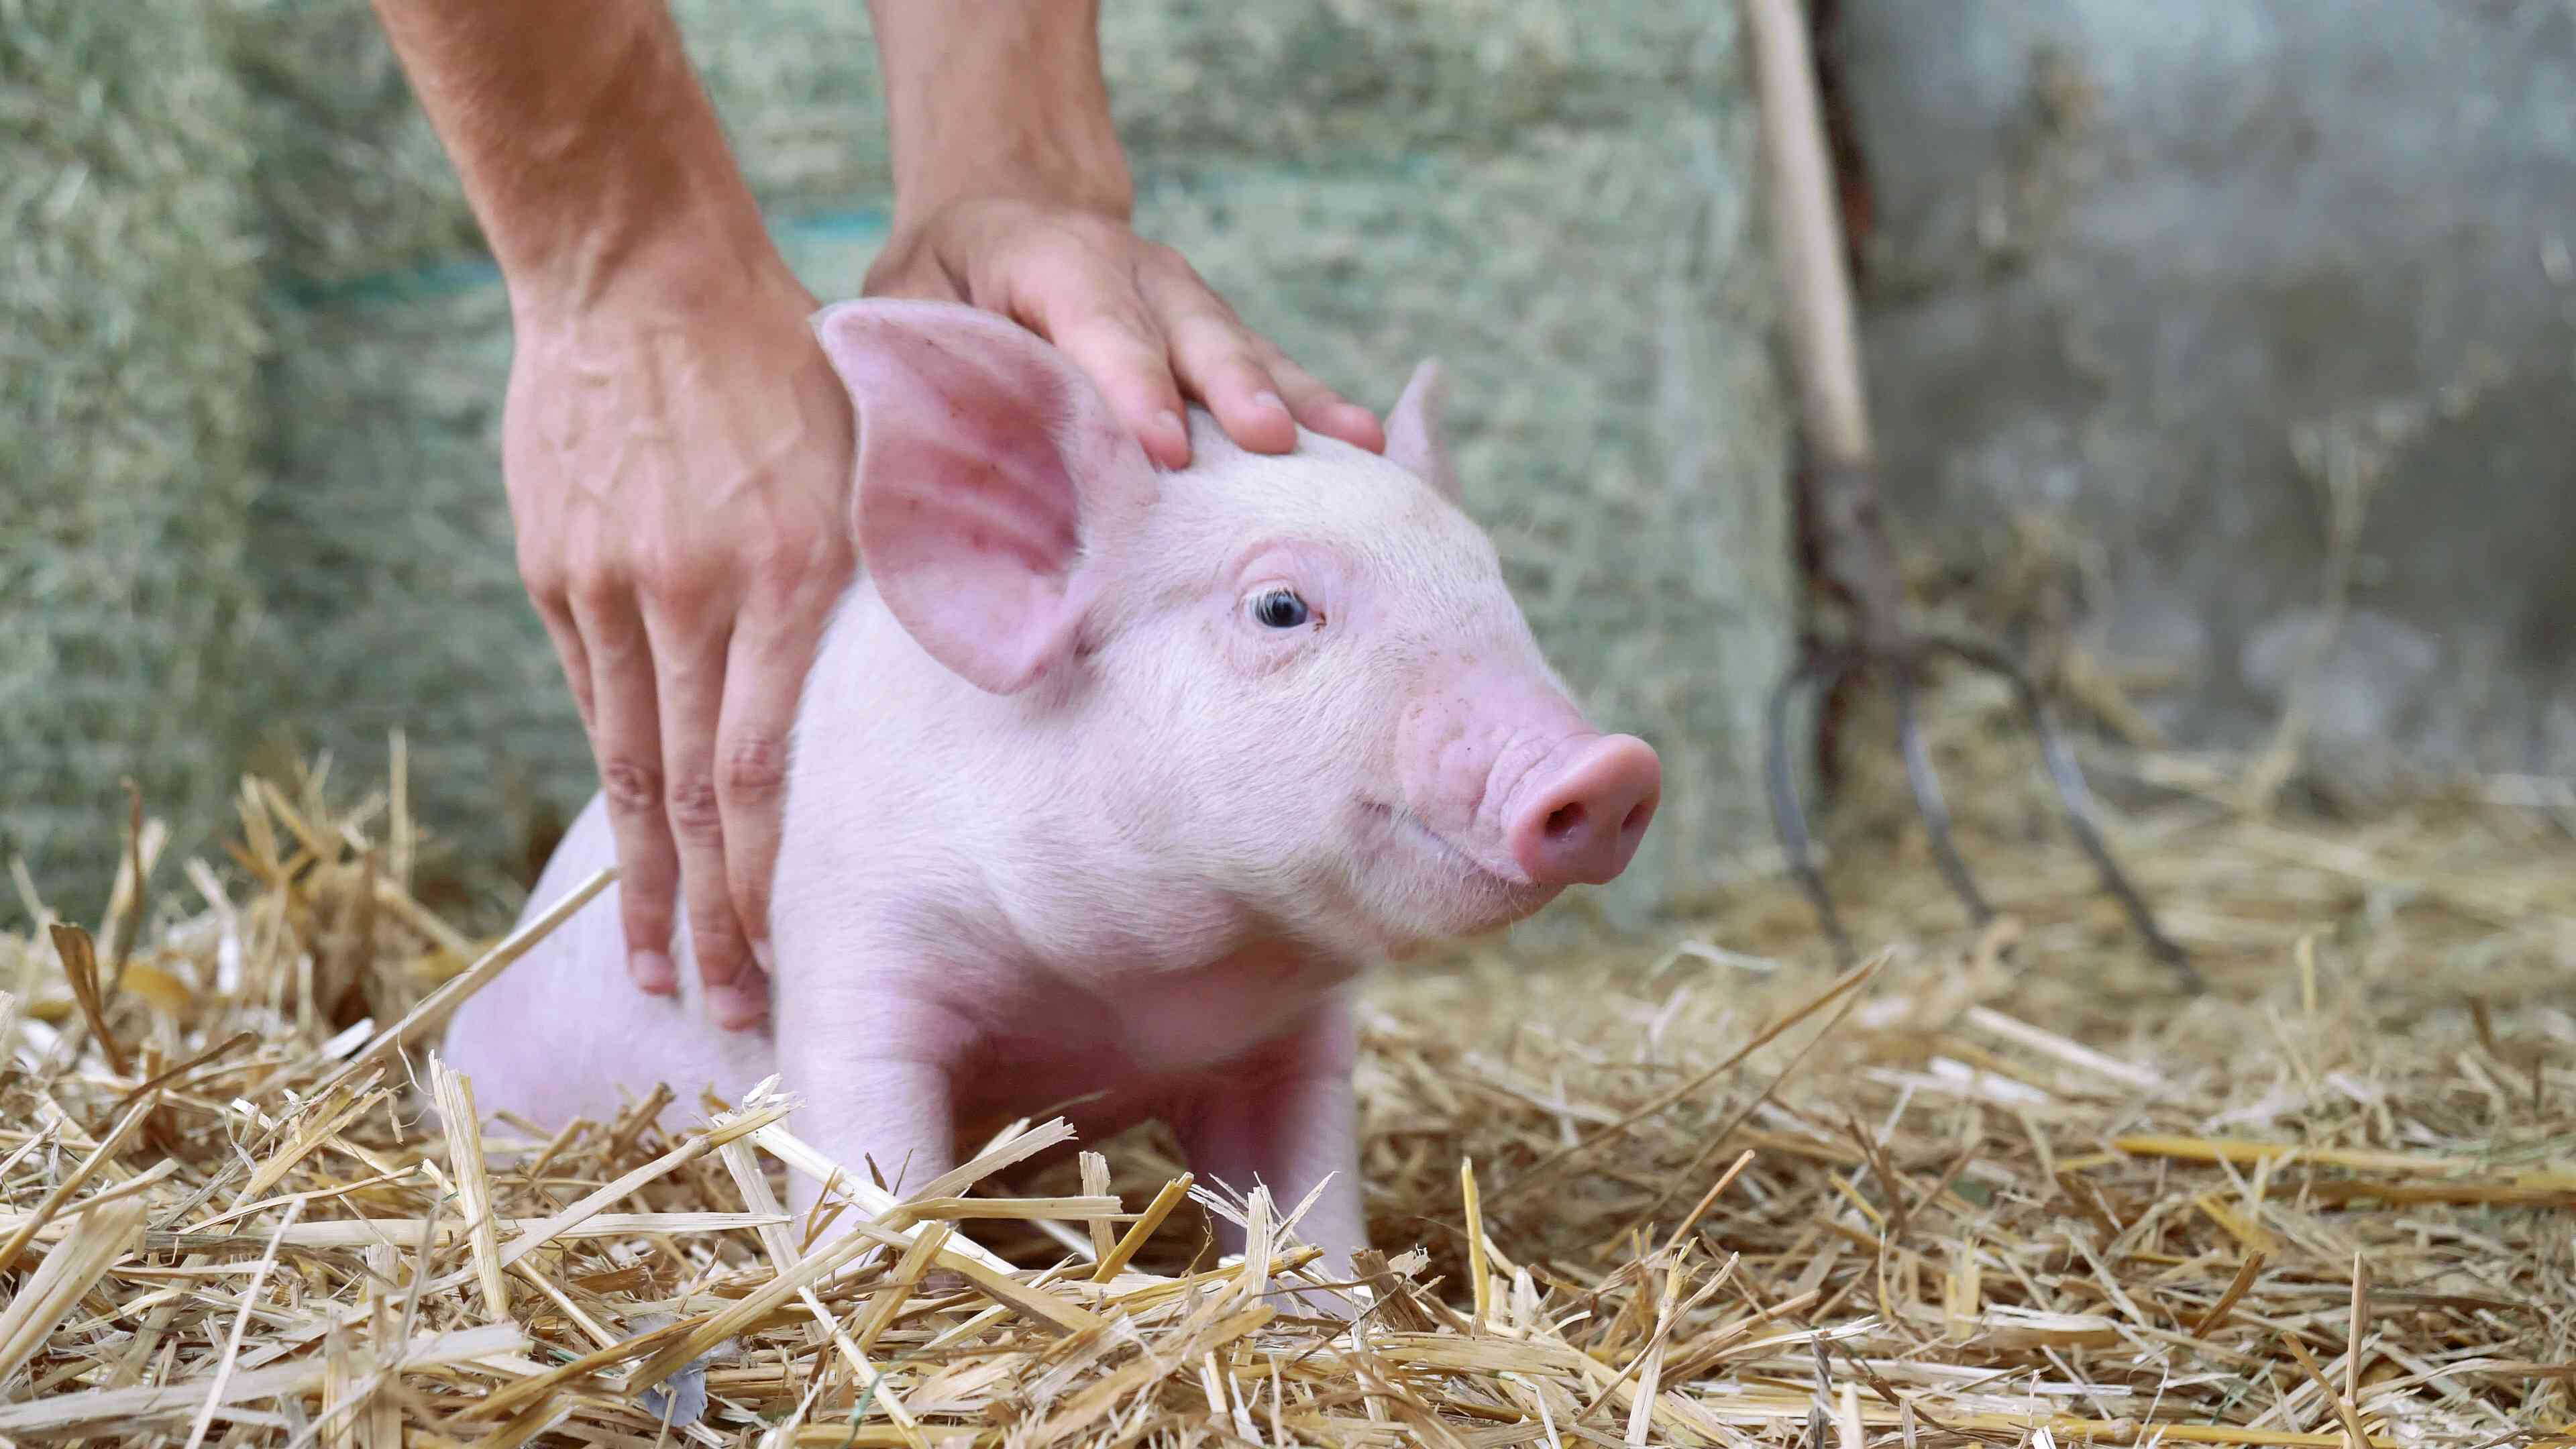 A hand petting a piglet sitting on hay.